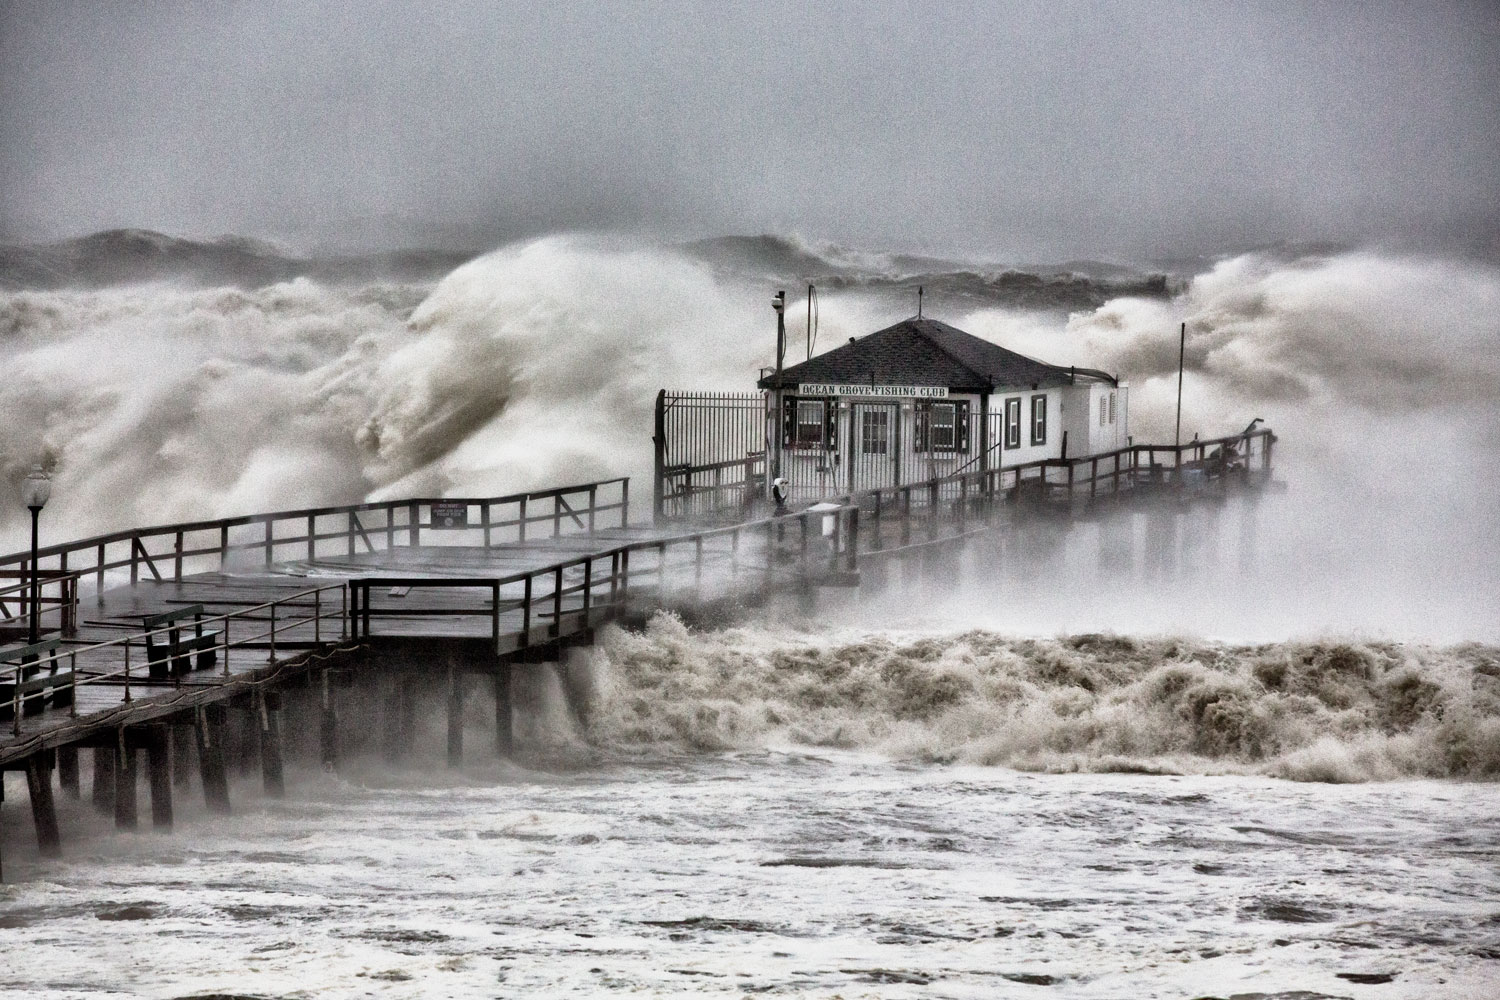 Hurricane Sandy, Ocean Grove Pier, N.J., Oct. 29, 2012